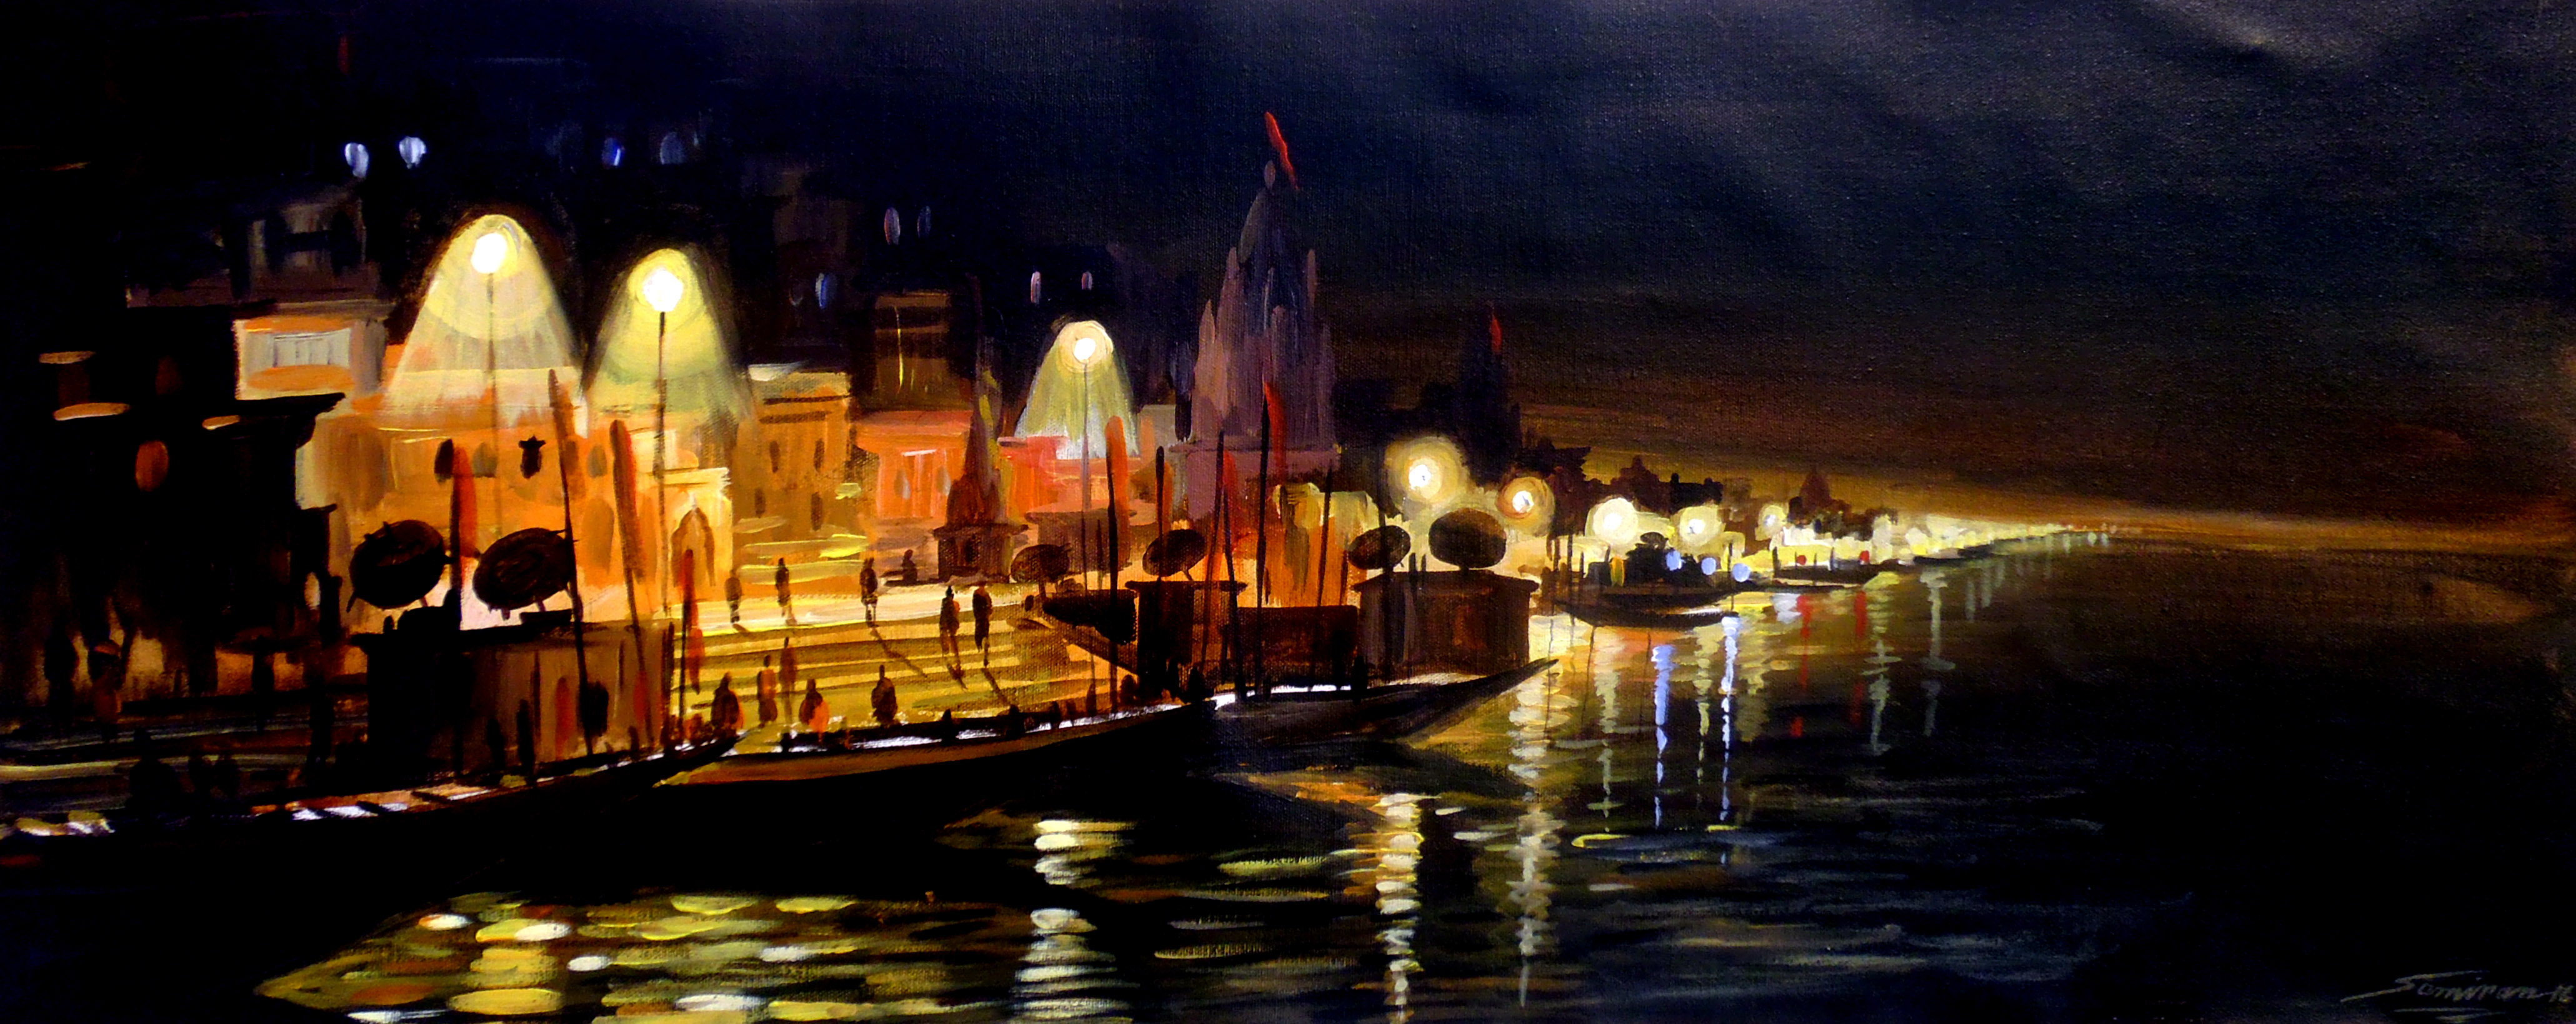 Varanasi Ghats at Night 7750